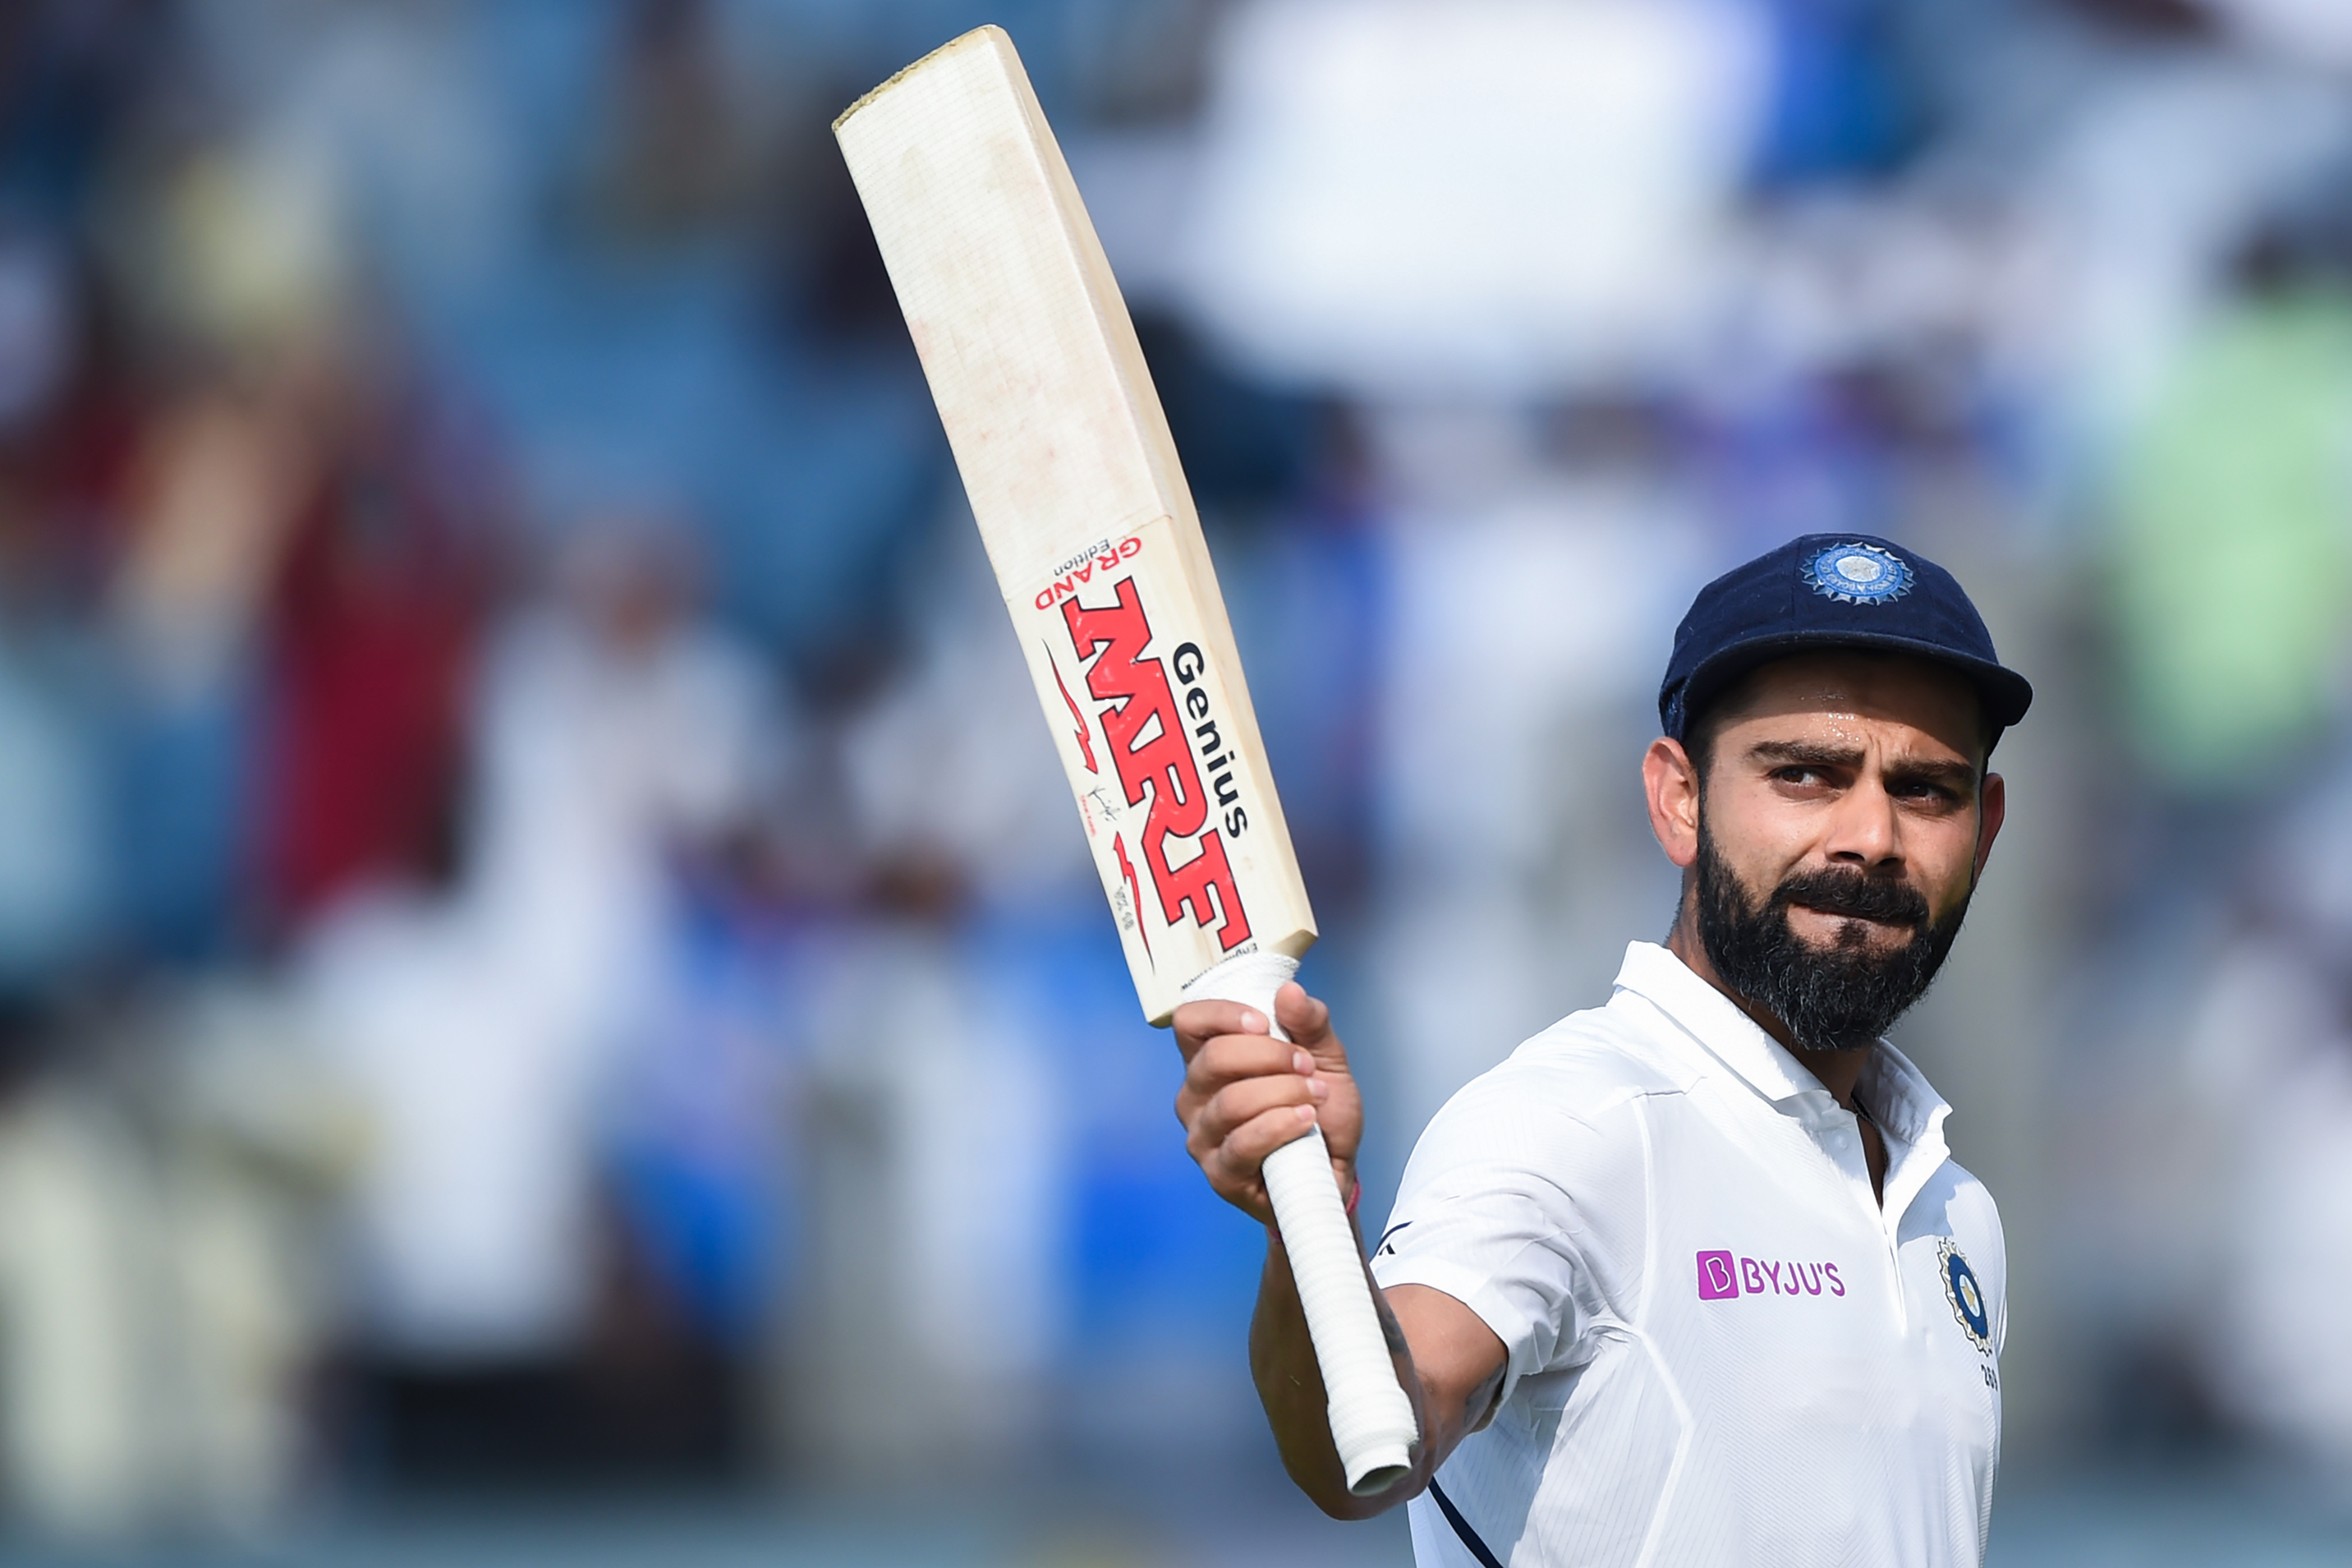 India's cricket team captain Virat Kohli rises his bat as he leaves the field after declearing their first innings during the second day of the second Test cricket match between India and South Africa at Maharashtra Cricket Association Stadium in Pune on October 11, 2019.